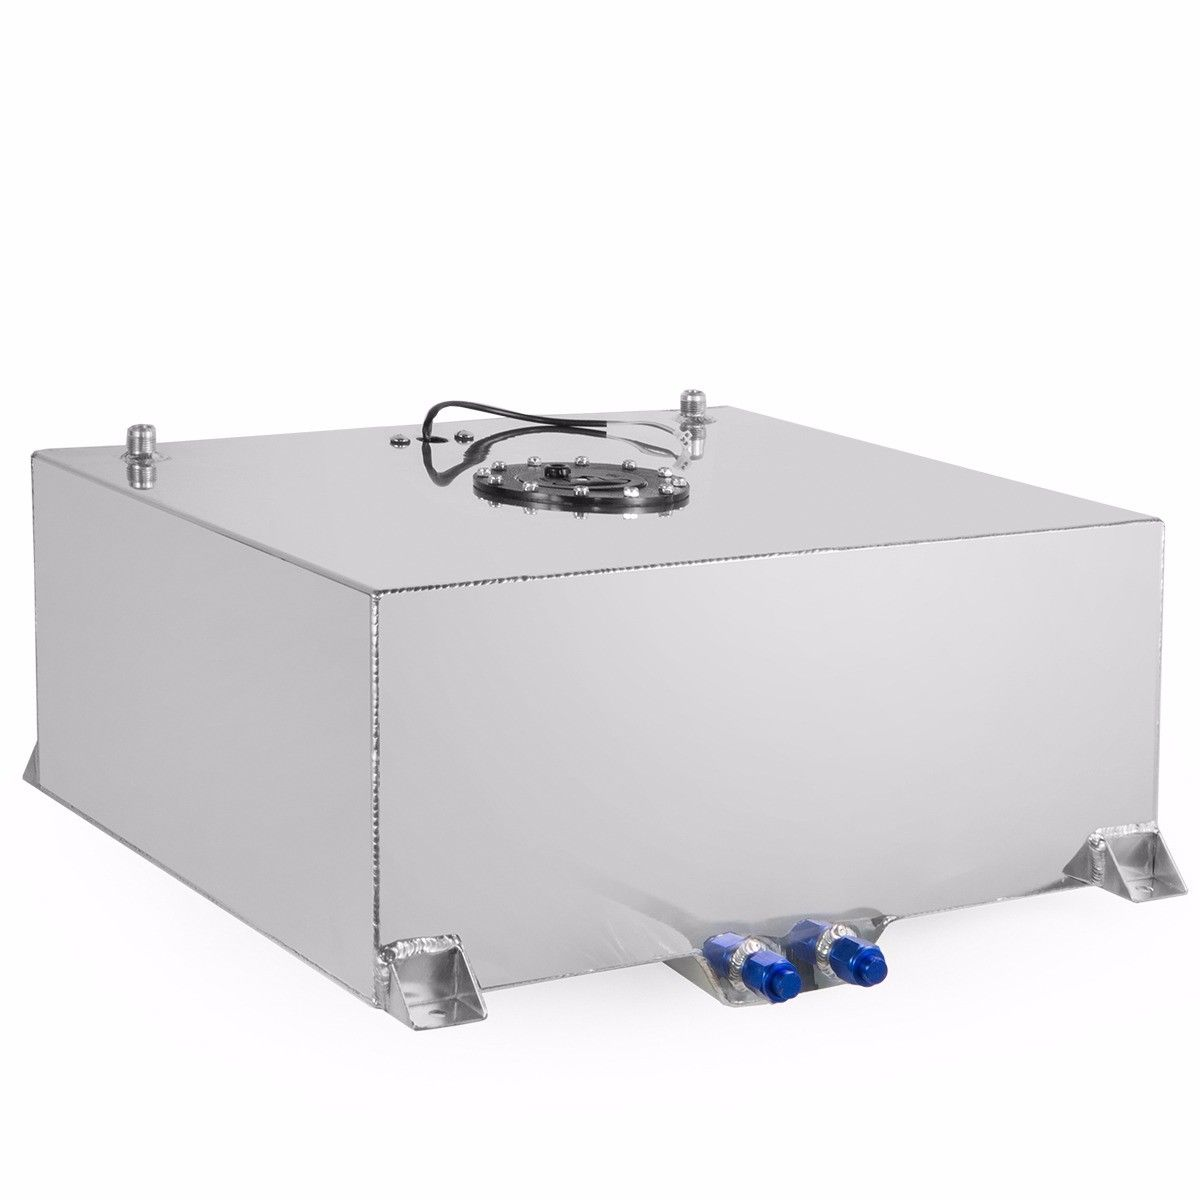 Lightweight Aluminum Polished Race Street Drift With Level Sender Silver 20-Gallon Universal Fuel Cell Gas Tank